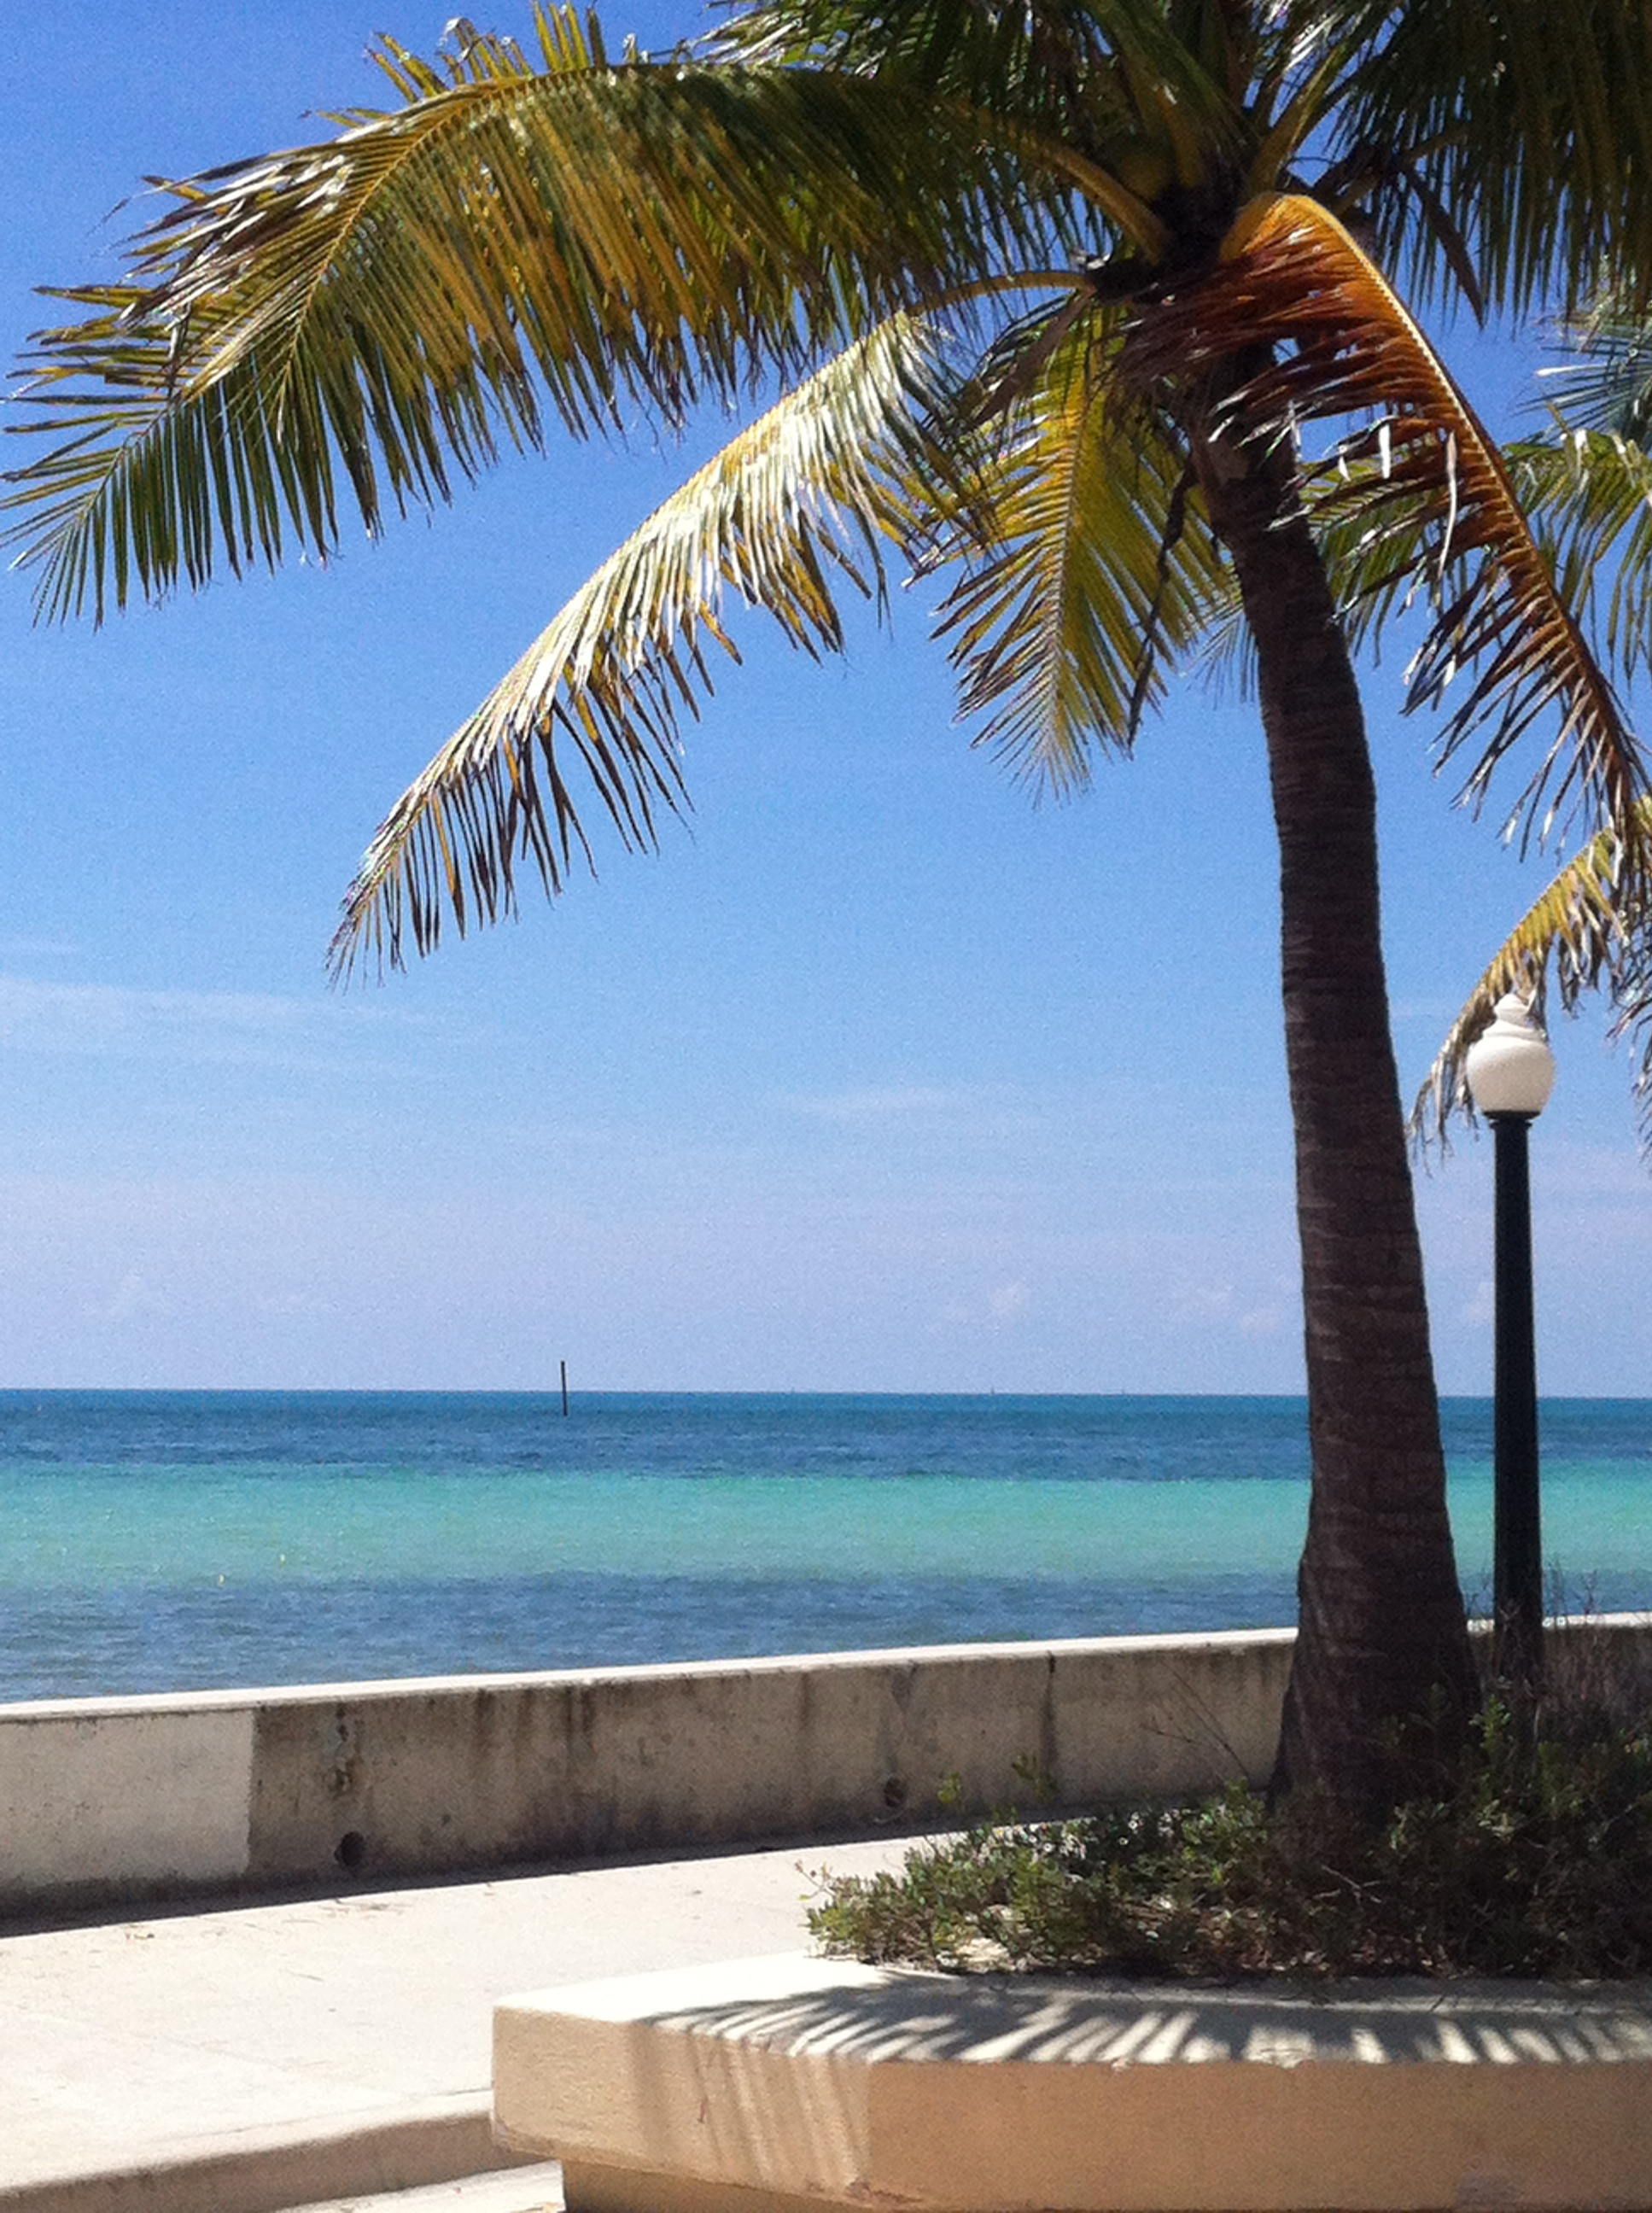 Gorgeous tropical views abound in Key West